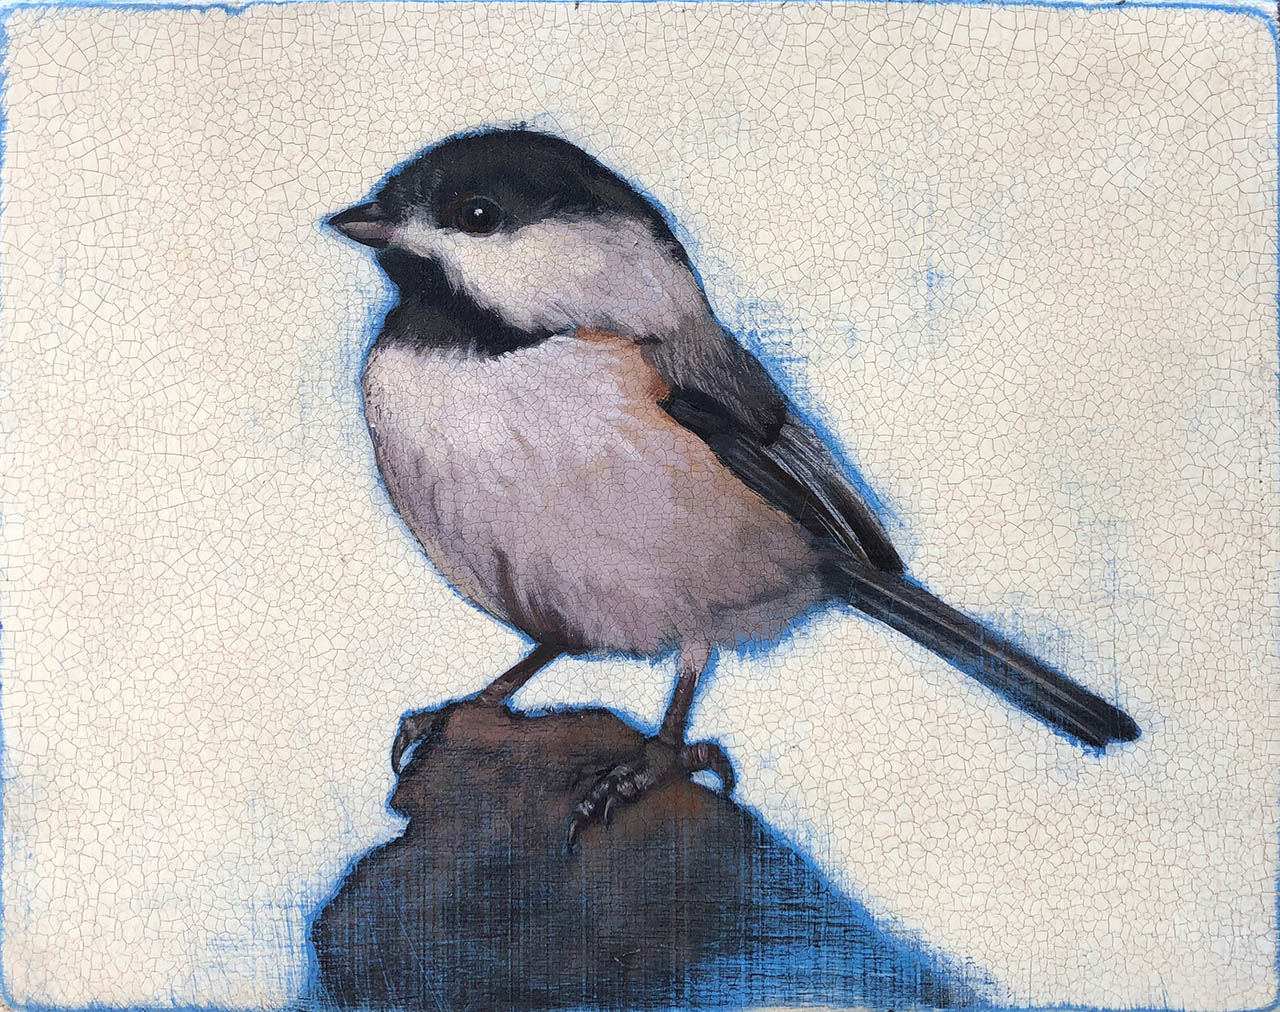 Young Chickadee, by Michael Wiens